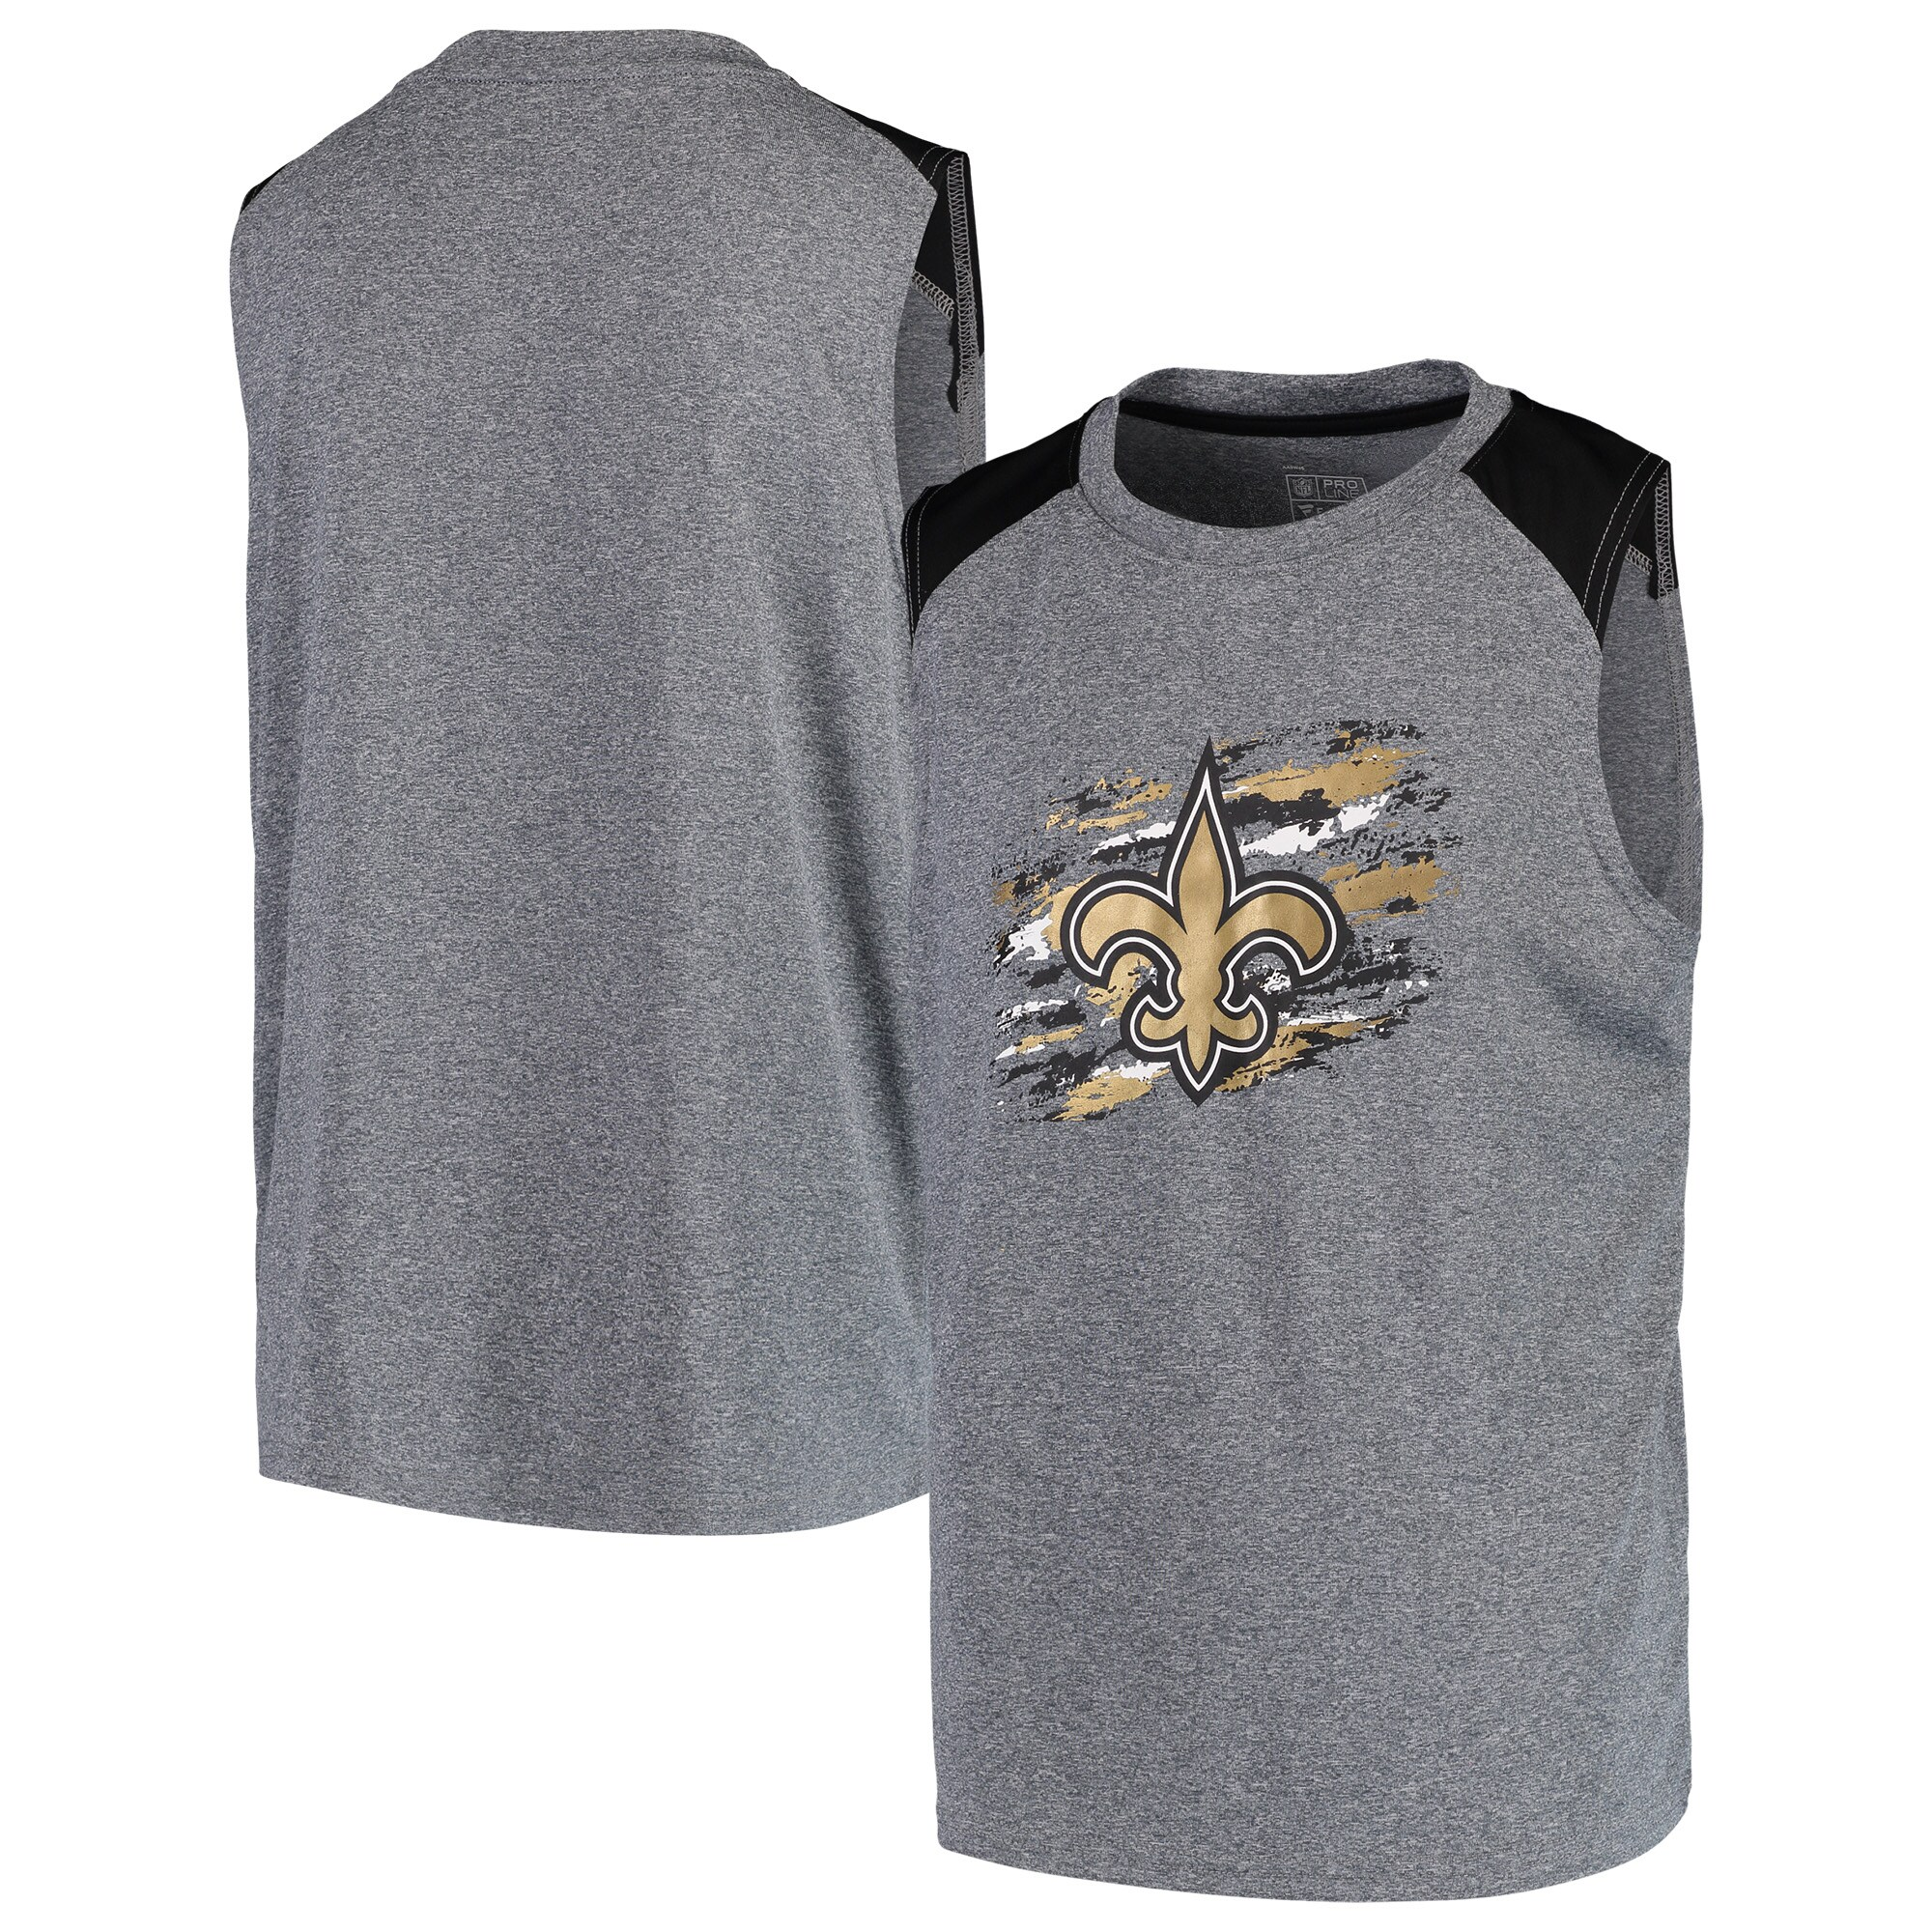 New Orleans Saints NFL Pro Line by Fanatics Branded Youth True Colors Sleeveless T-Shirt - Heathered Gray